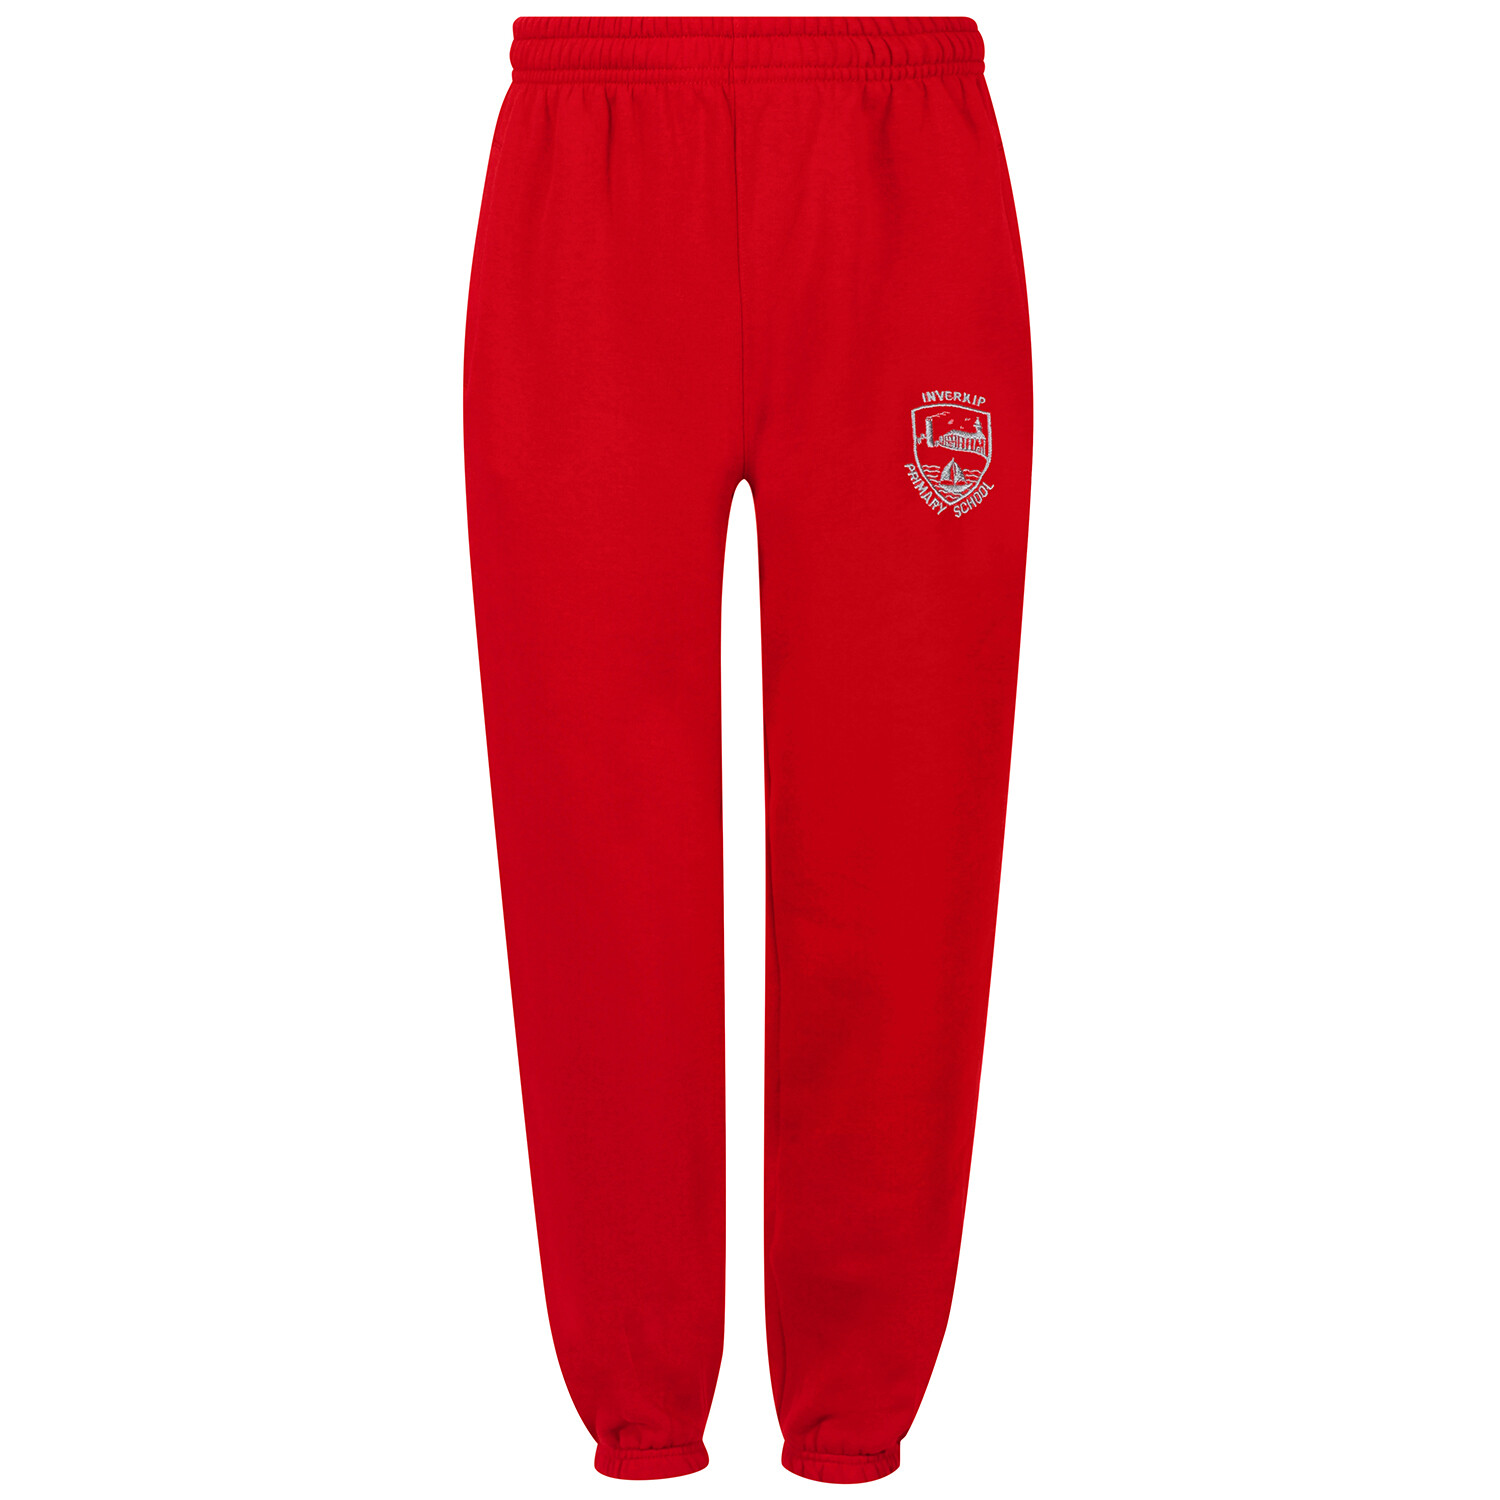 Inverkip Jog Pant for PE & Outdoor Activity (choice of colours)